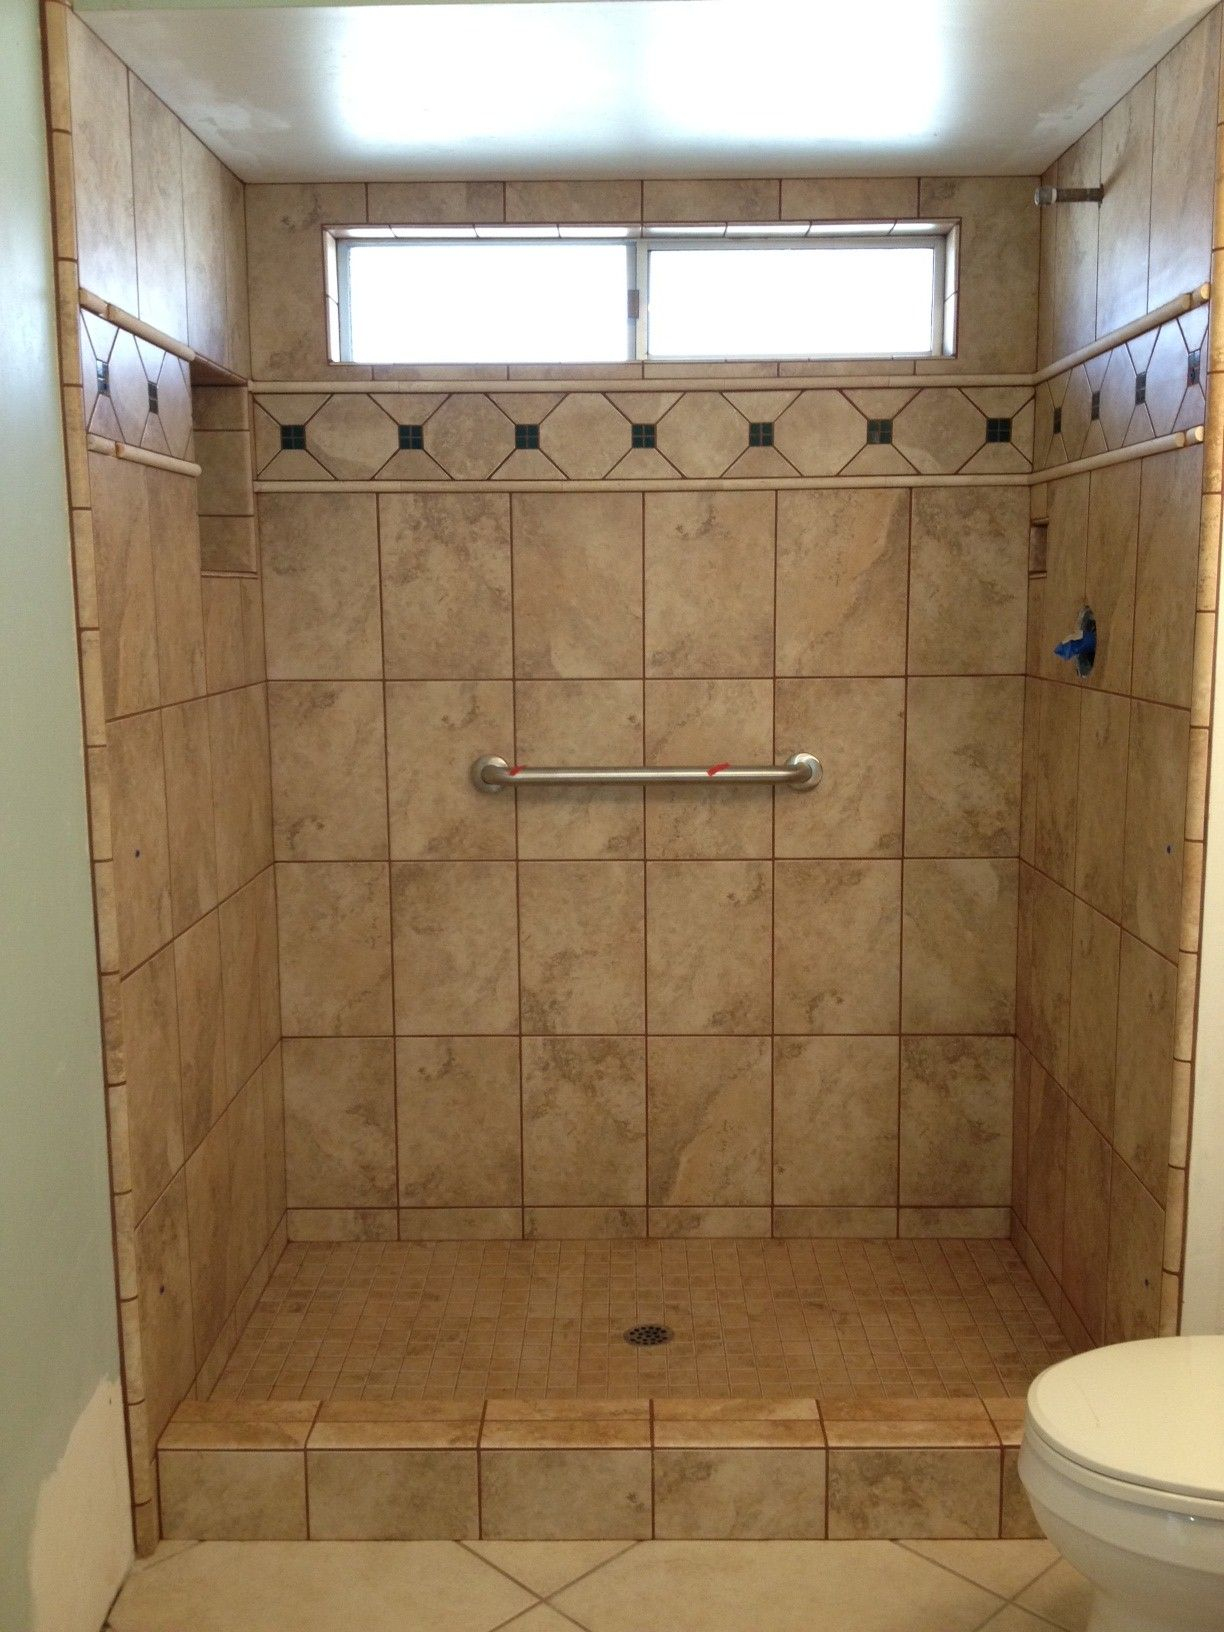 Photos of tiled shower stalls photos gallery custom for Small tiled showers